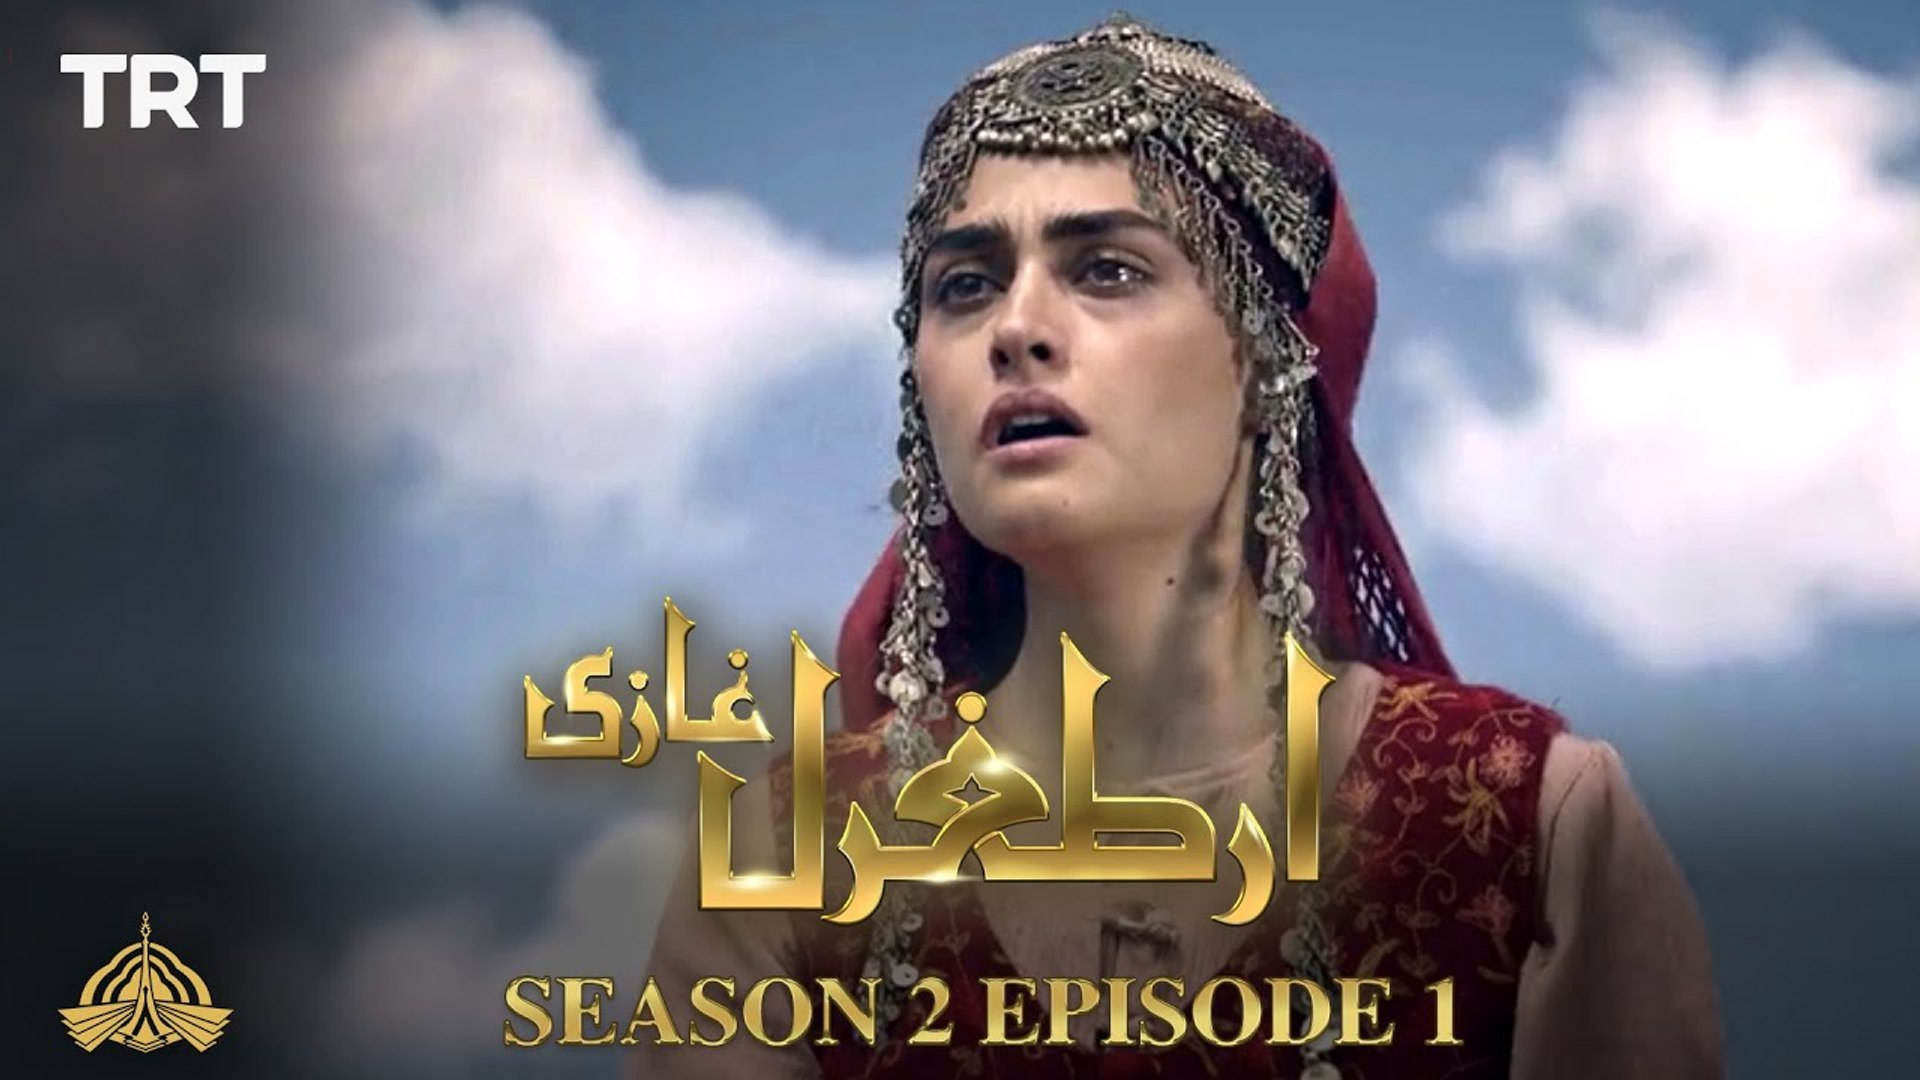 Ertugrul Ghazi Urdu - Episode 1- Season 2